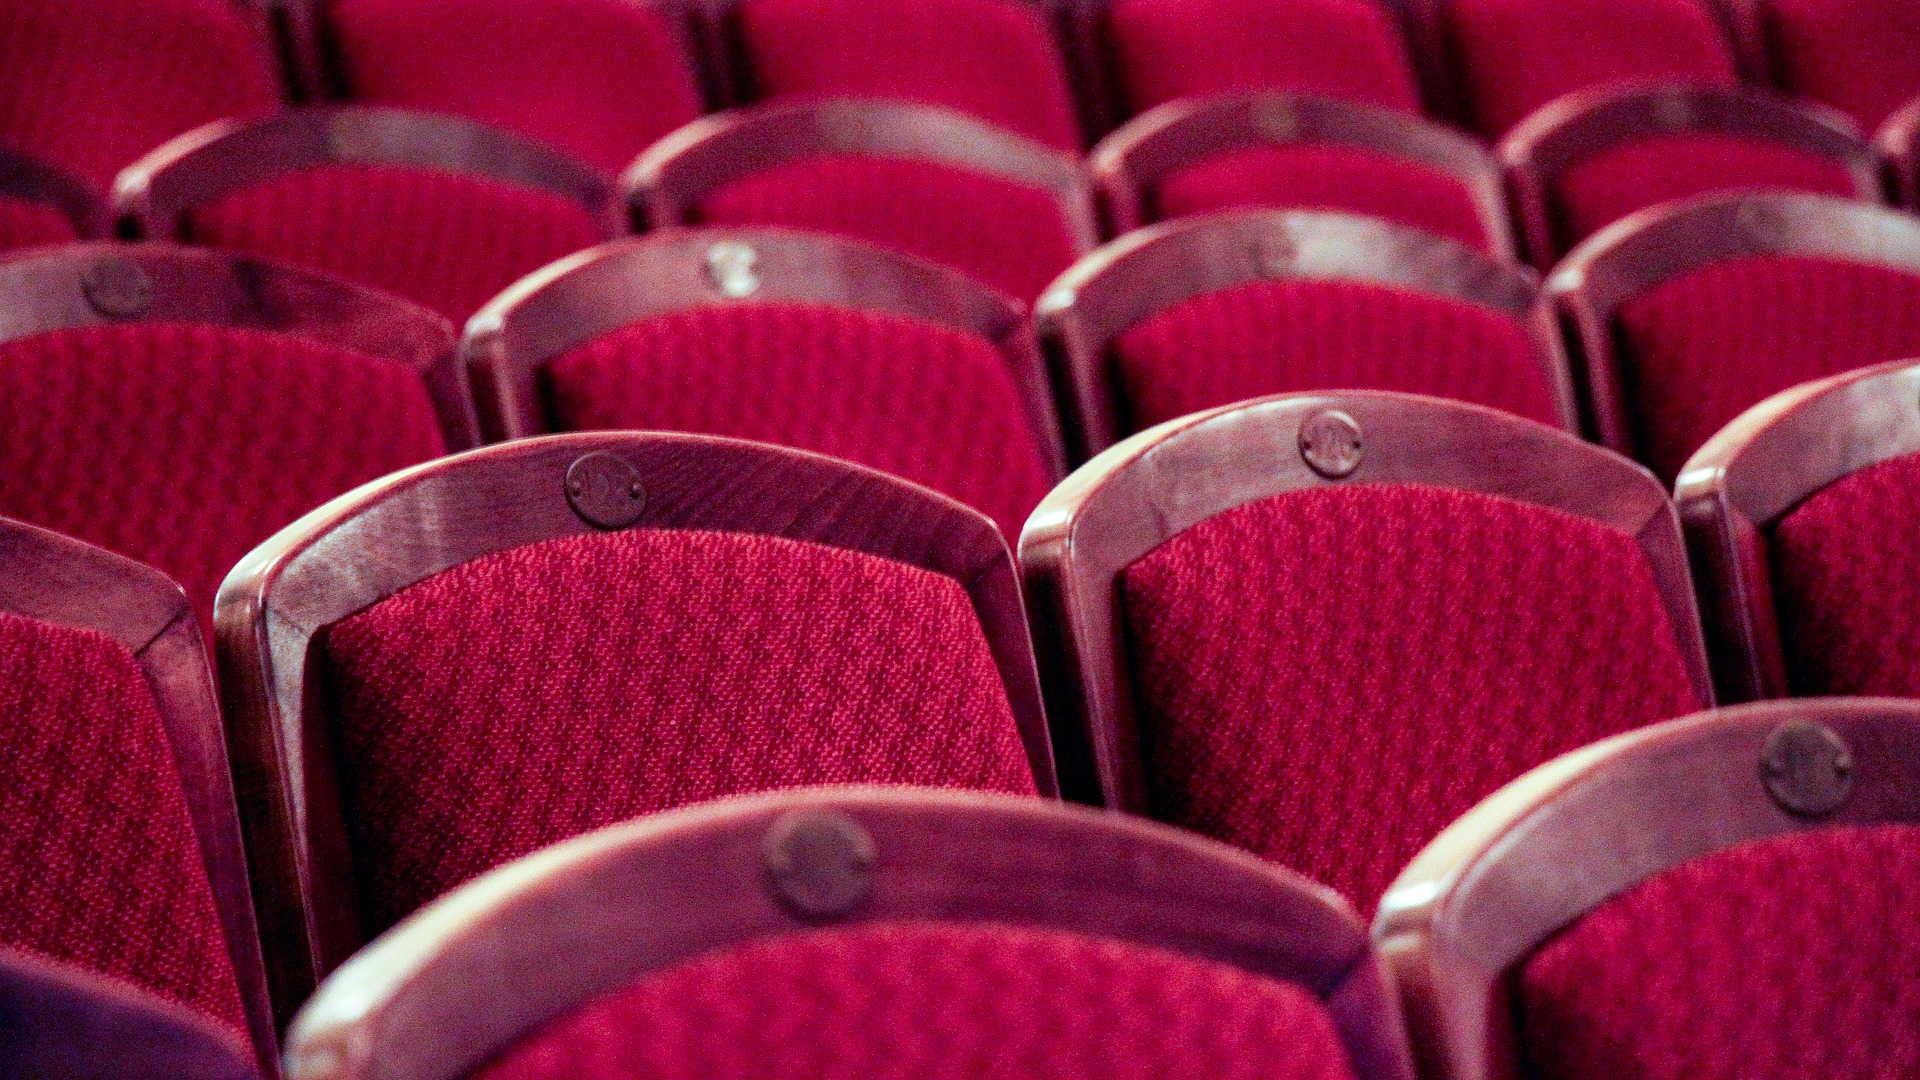 40% of Chinese Theaters Could Permanently Close Due to Coronavirus